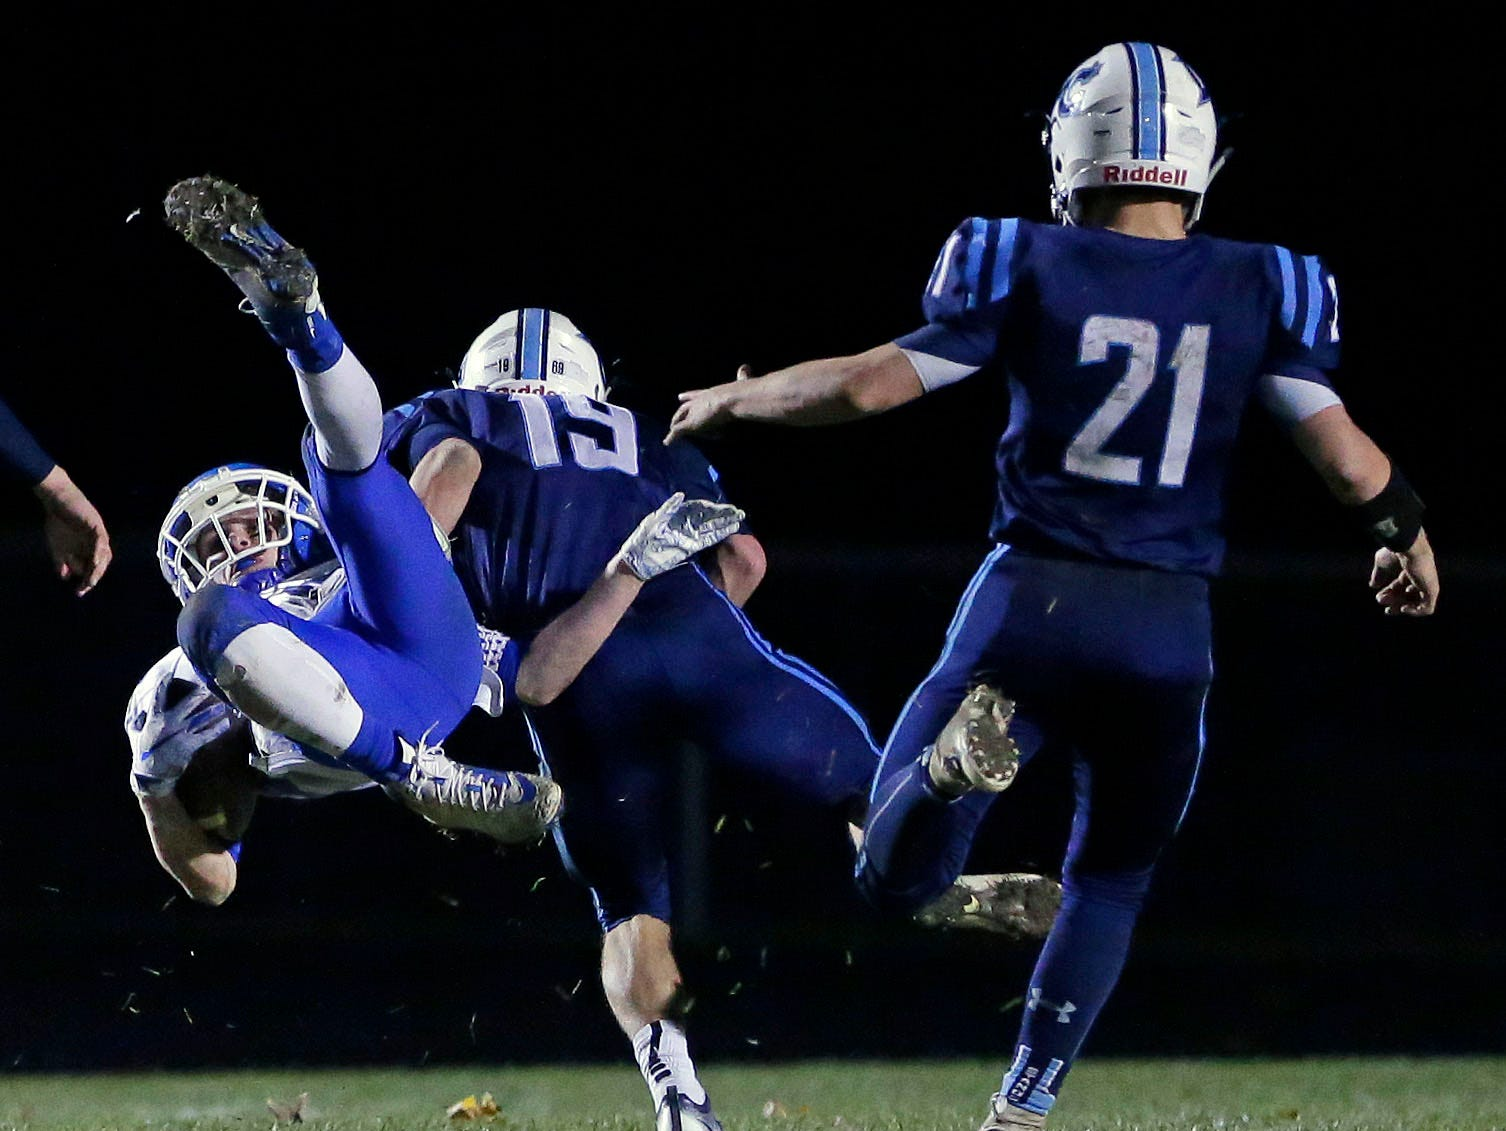 Jacob Lillge of Little Chute tackles Will Braeger of Wrightstown in a WIAA Division 4 Level 3 playoff game Friday, November 2, 2018, at Fitzpatrick Field in Little Chute, Wis.Ron Page/USA TODAY NETWORK-Wisconsin